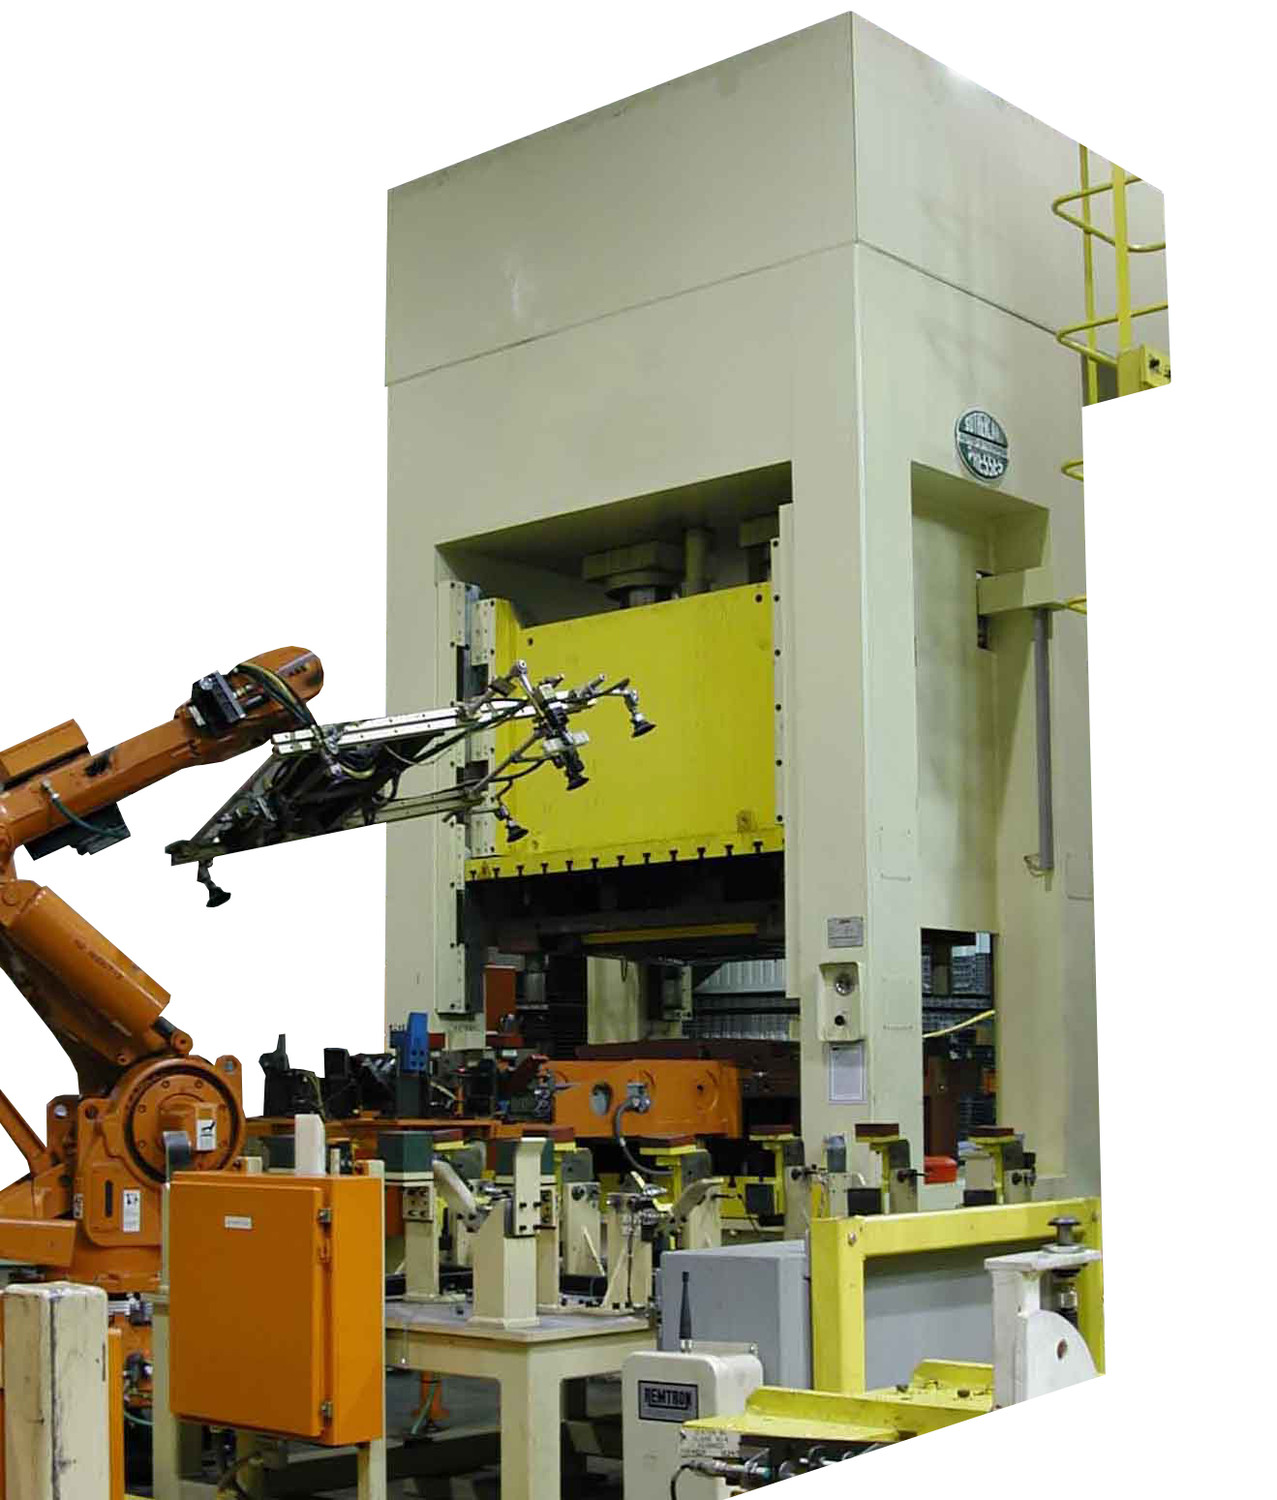 Sutherland Hydraulic Press with Robotic Cell